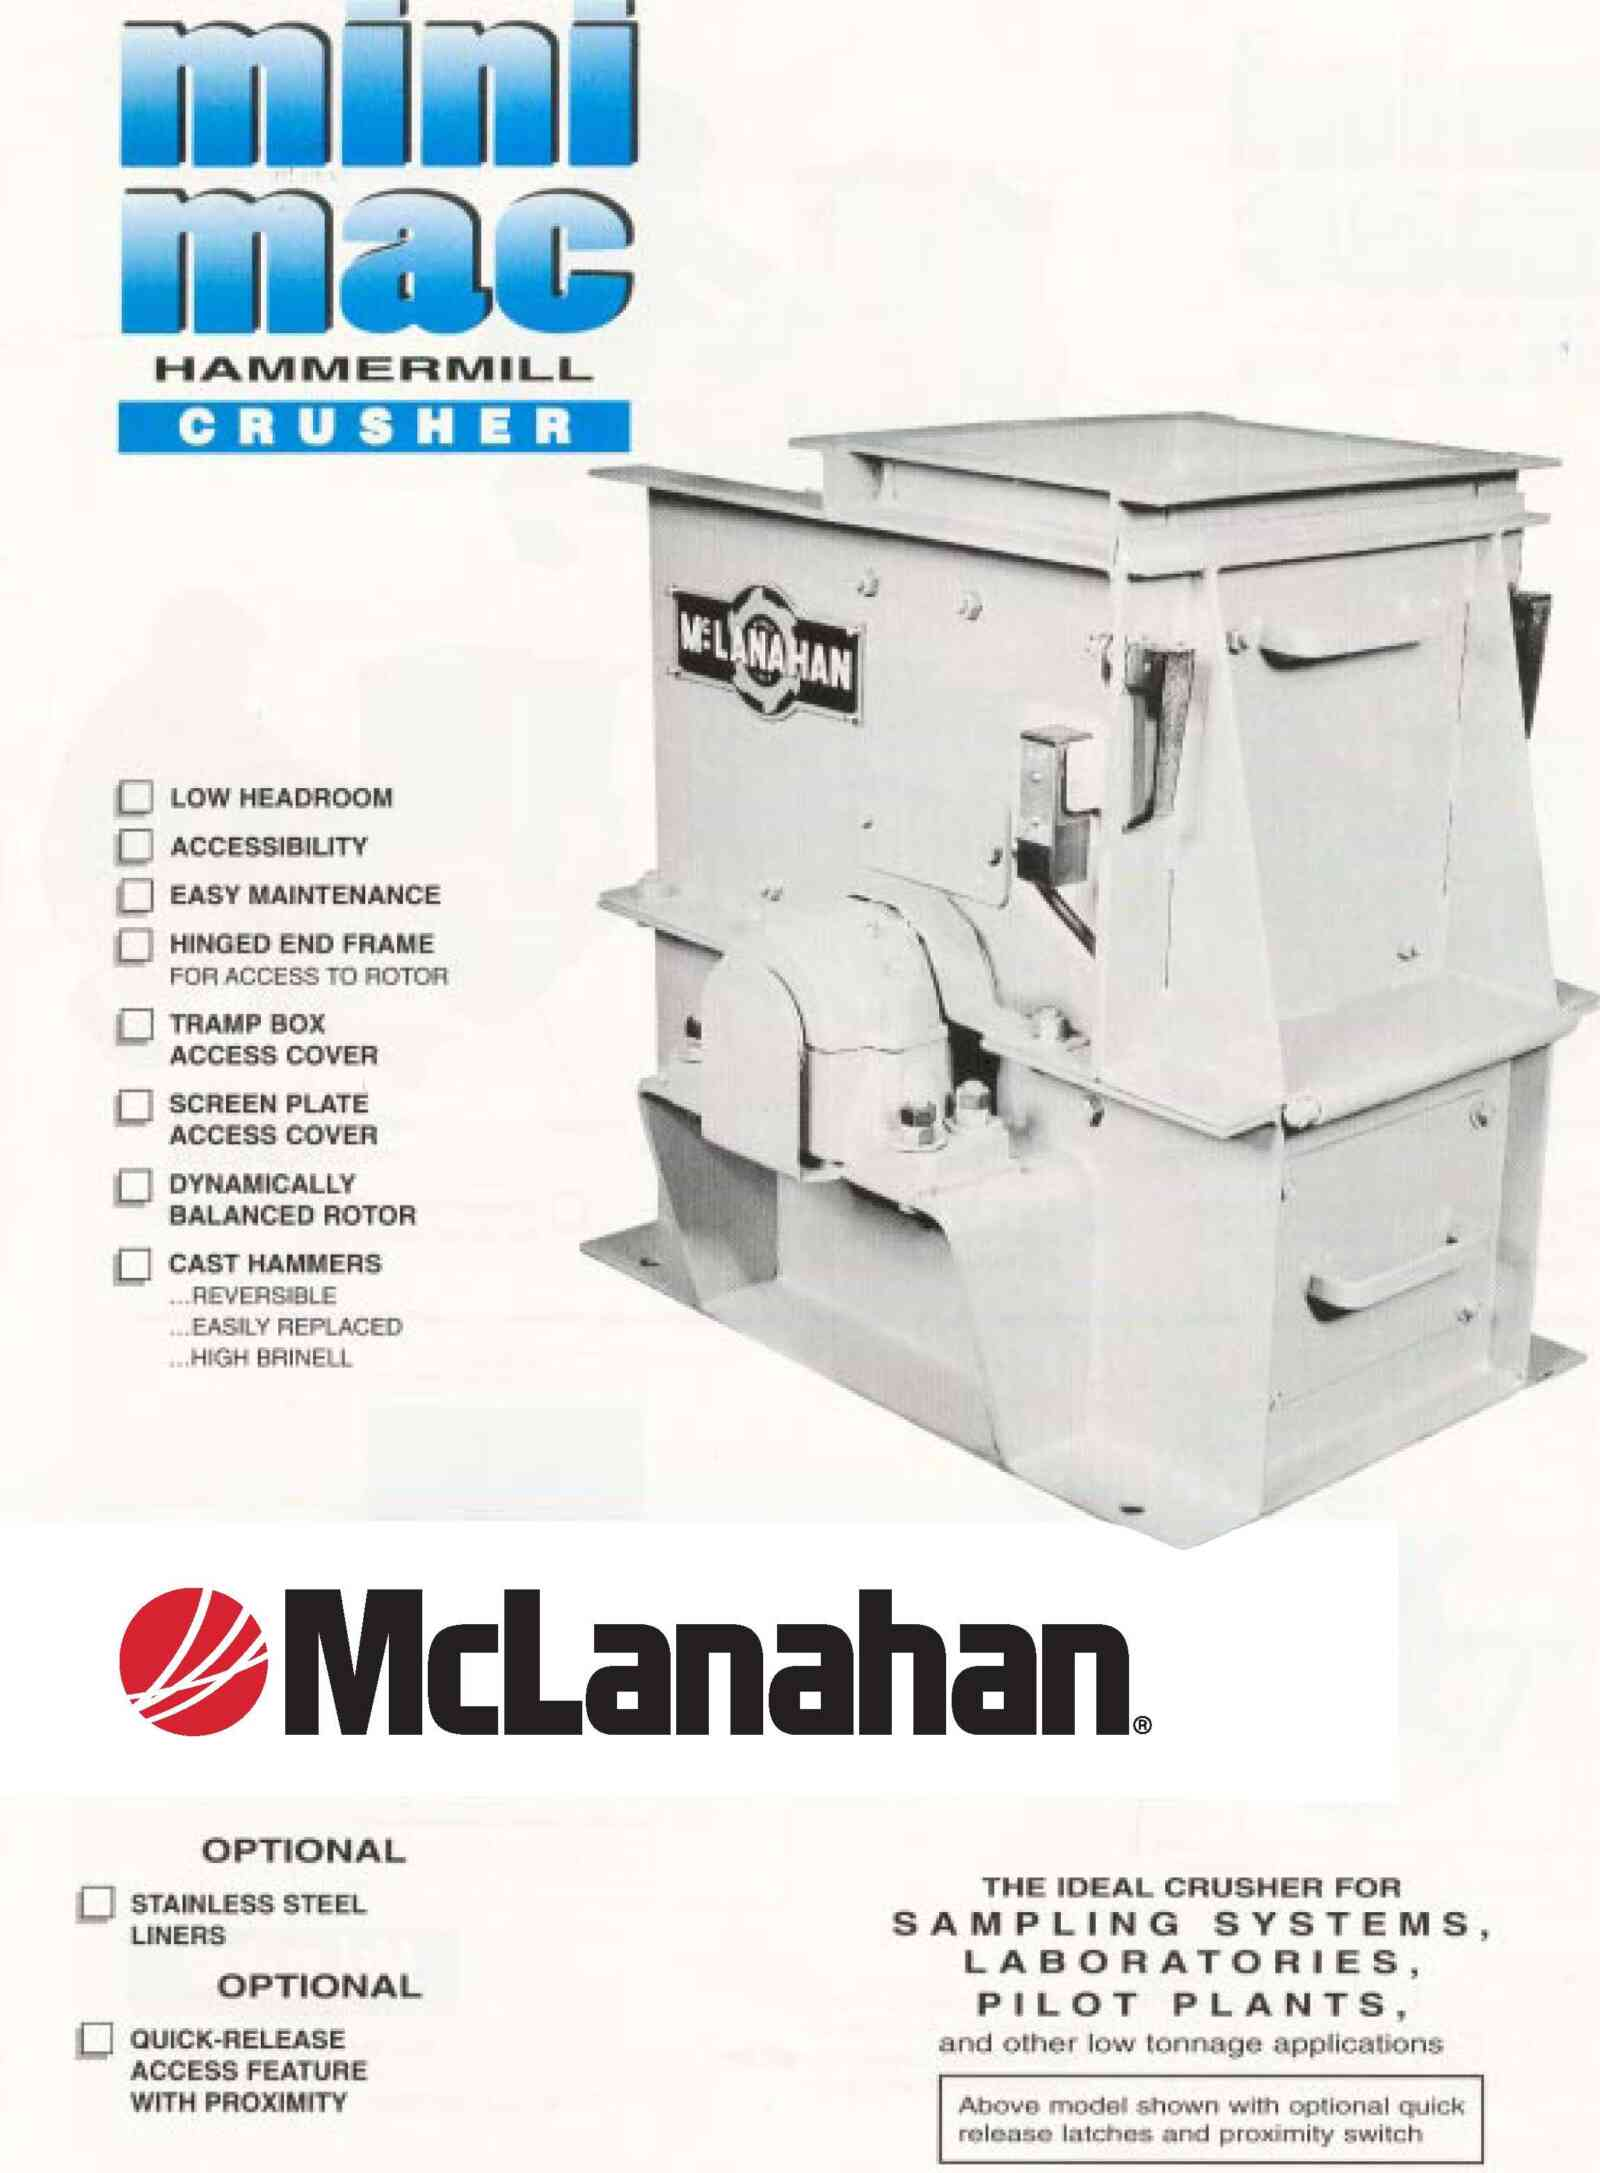 Minimac Hammermill Crusher Brochure Image Page 1